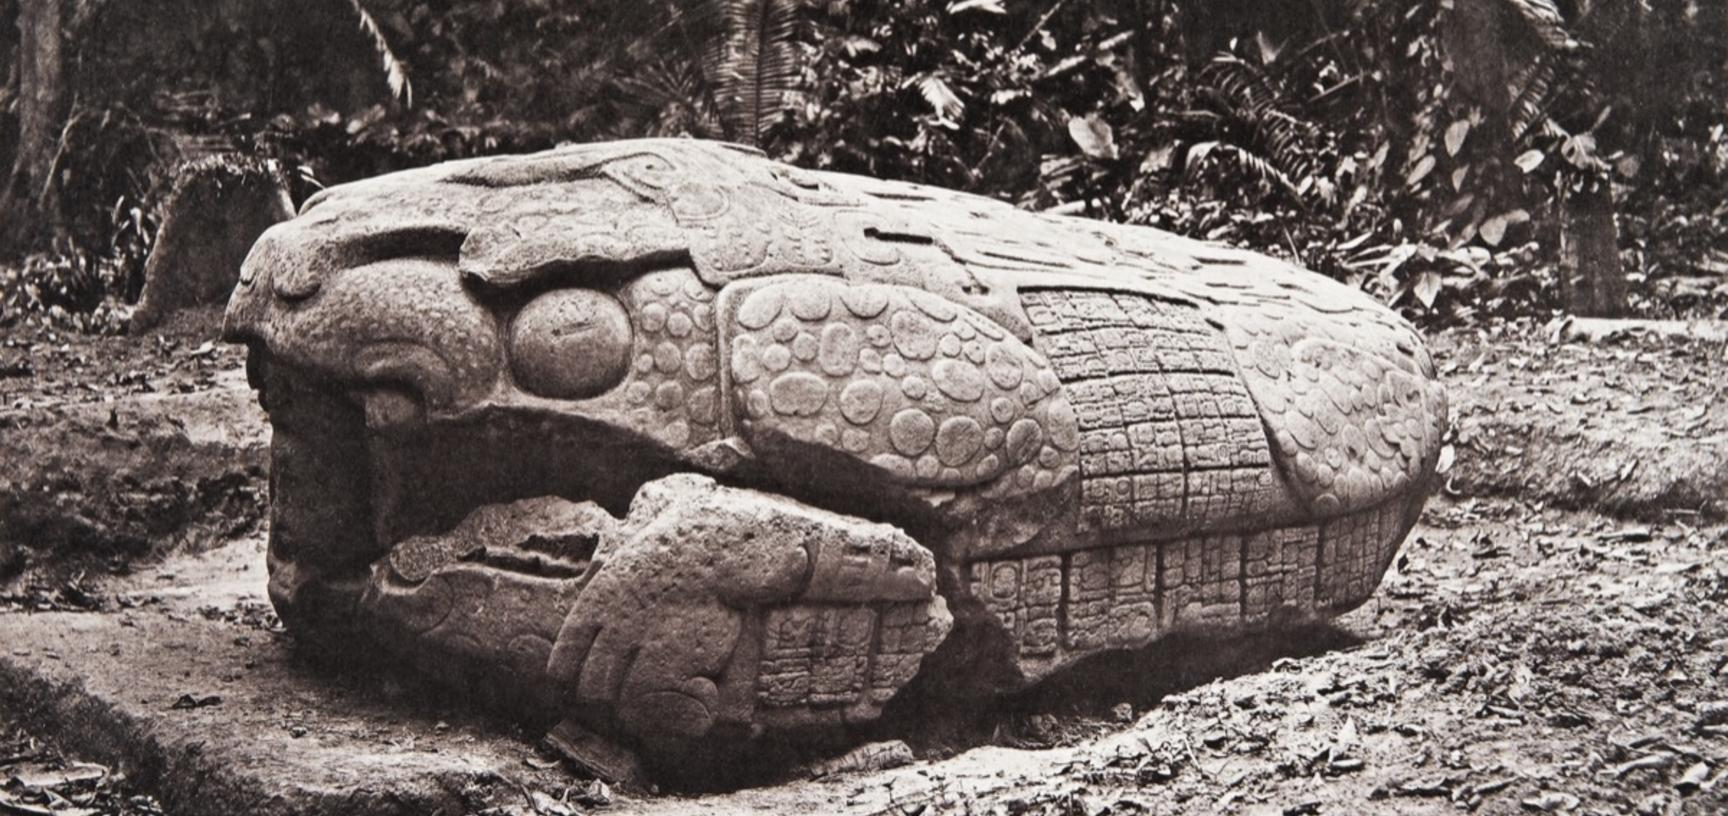 Zoomorph G (also known as Monument 7), west side, dated AD 785. The monument is now understood by scholars to represent a 'Waterlily Jaguar', with human figures wearing headdresses emerging from both ends. It was created during the first year of the reign